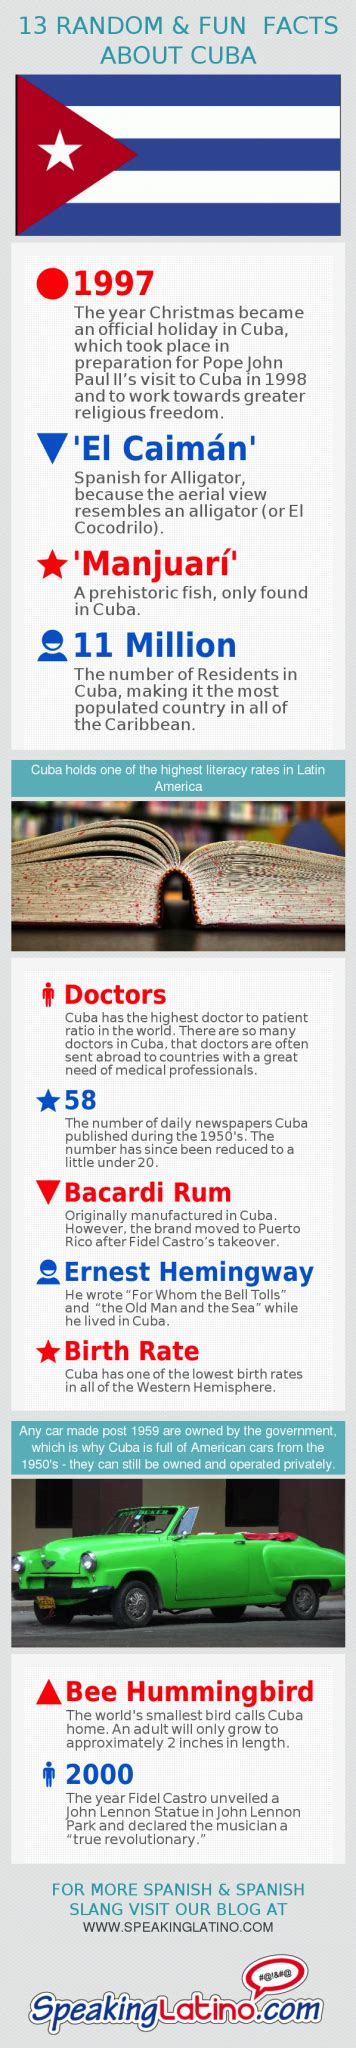 Infographic Random Fun Facts About Cuba